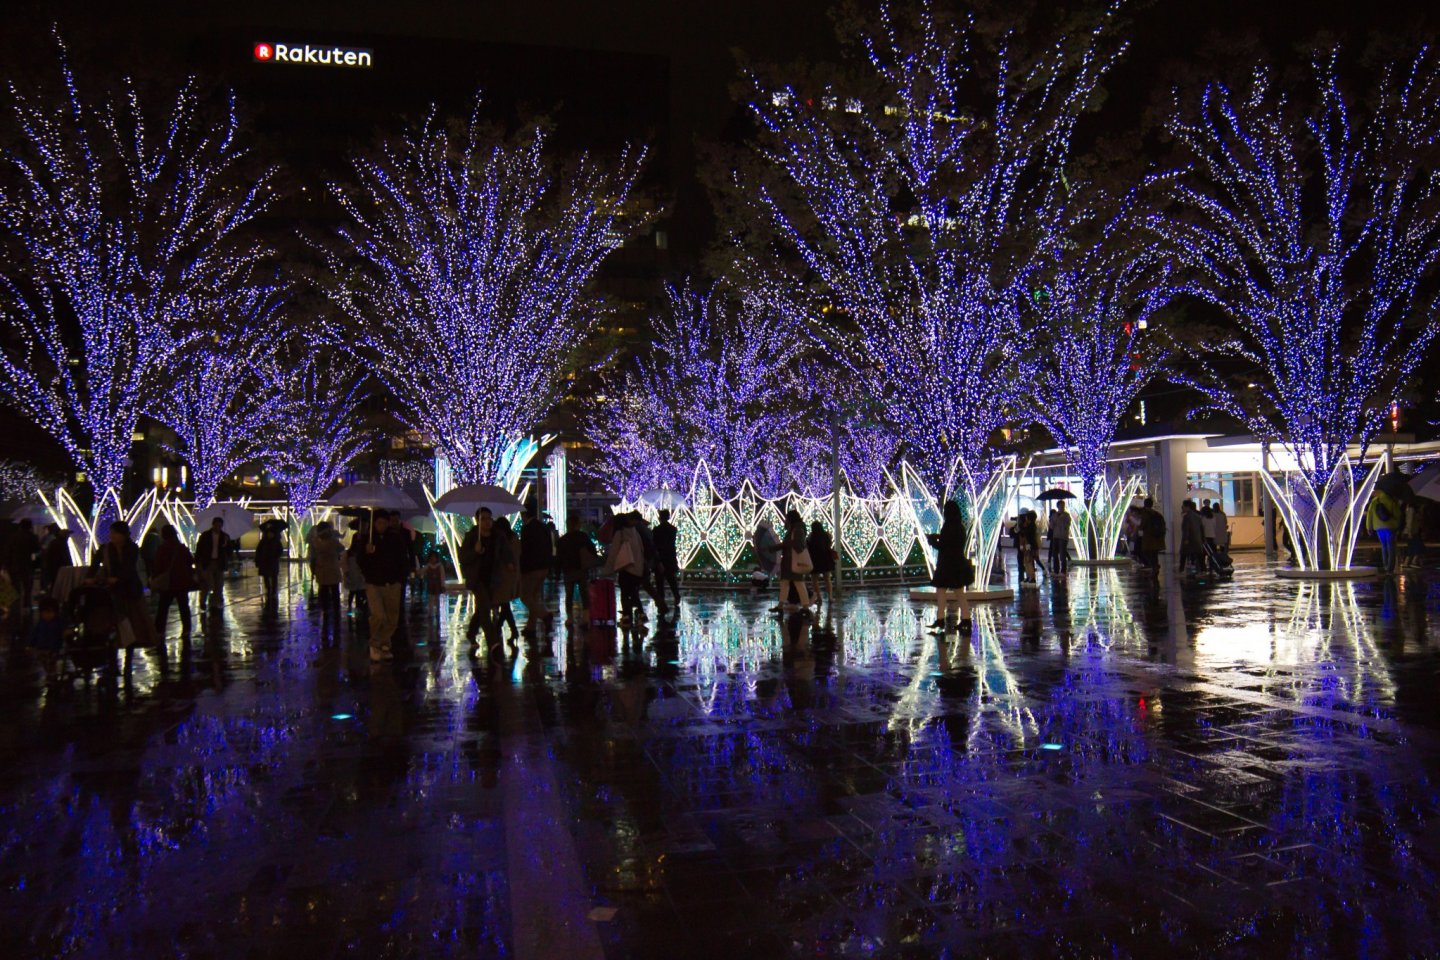 Absolutely stunning Christmas lights outside JR Hakata Station